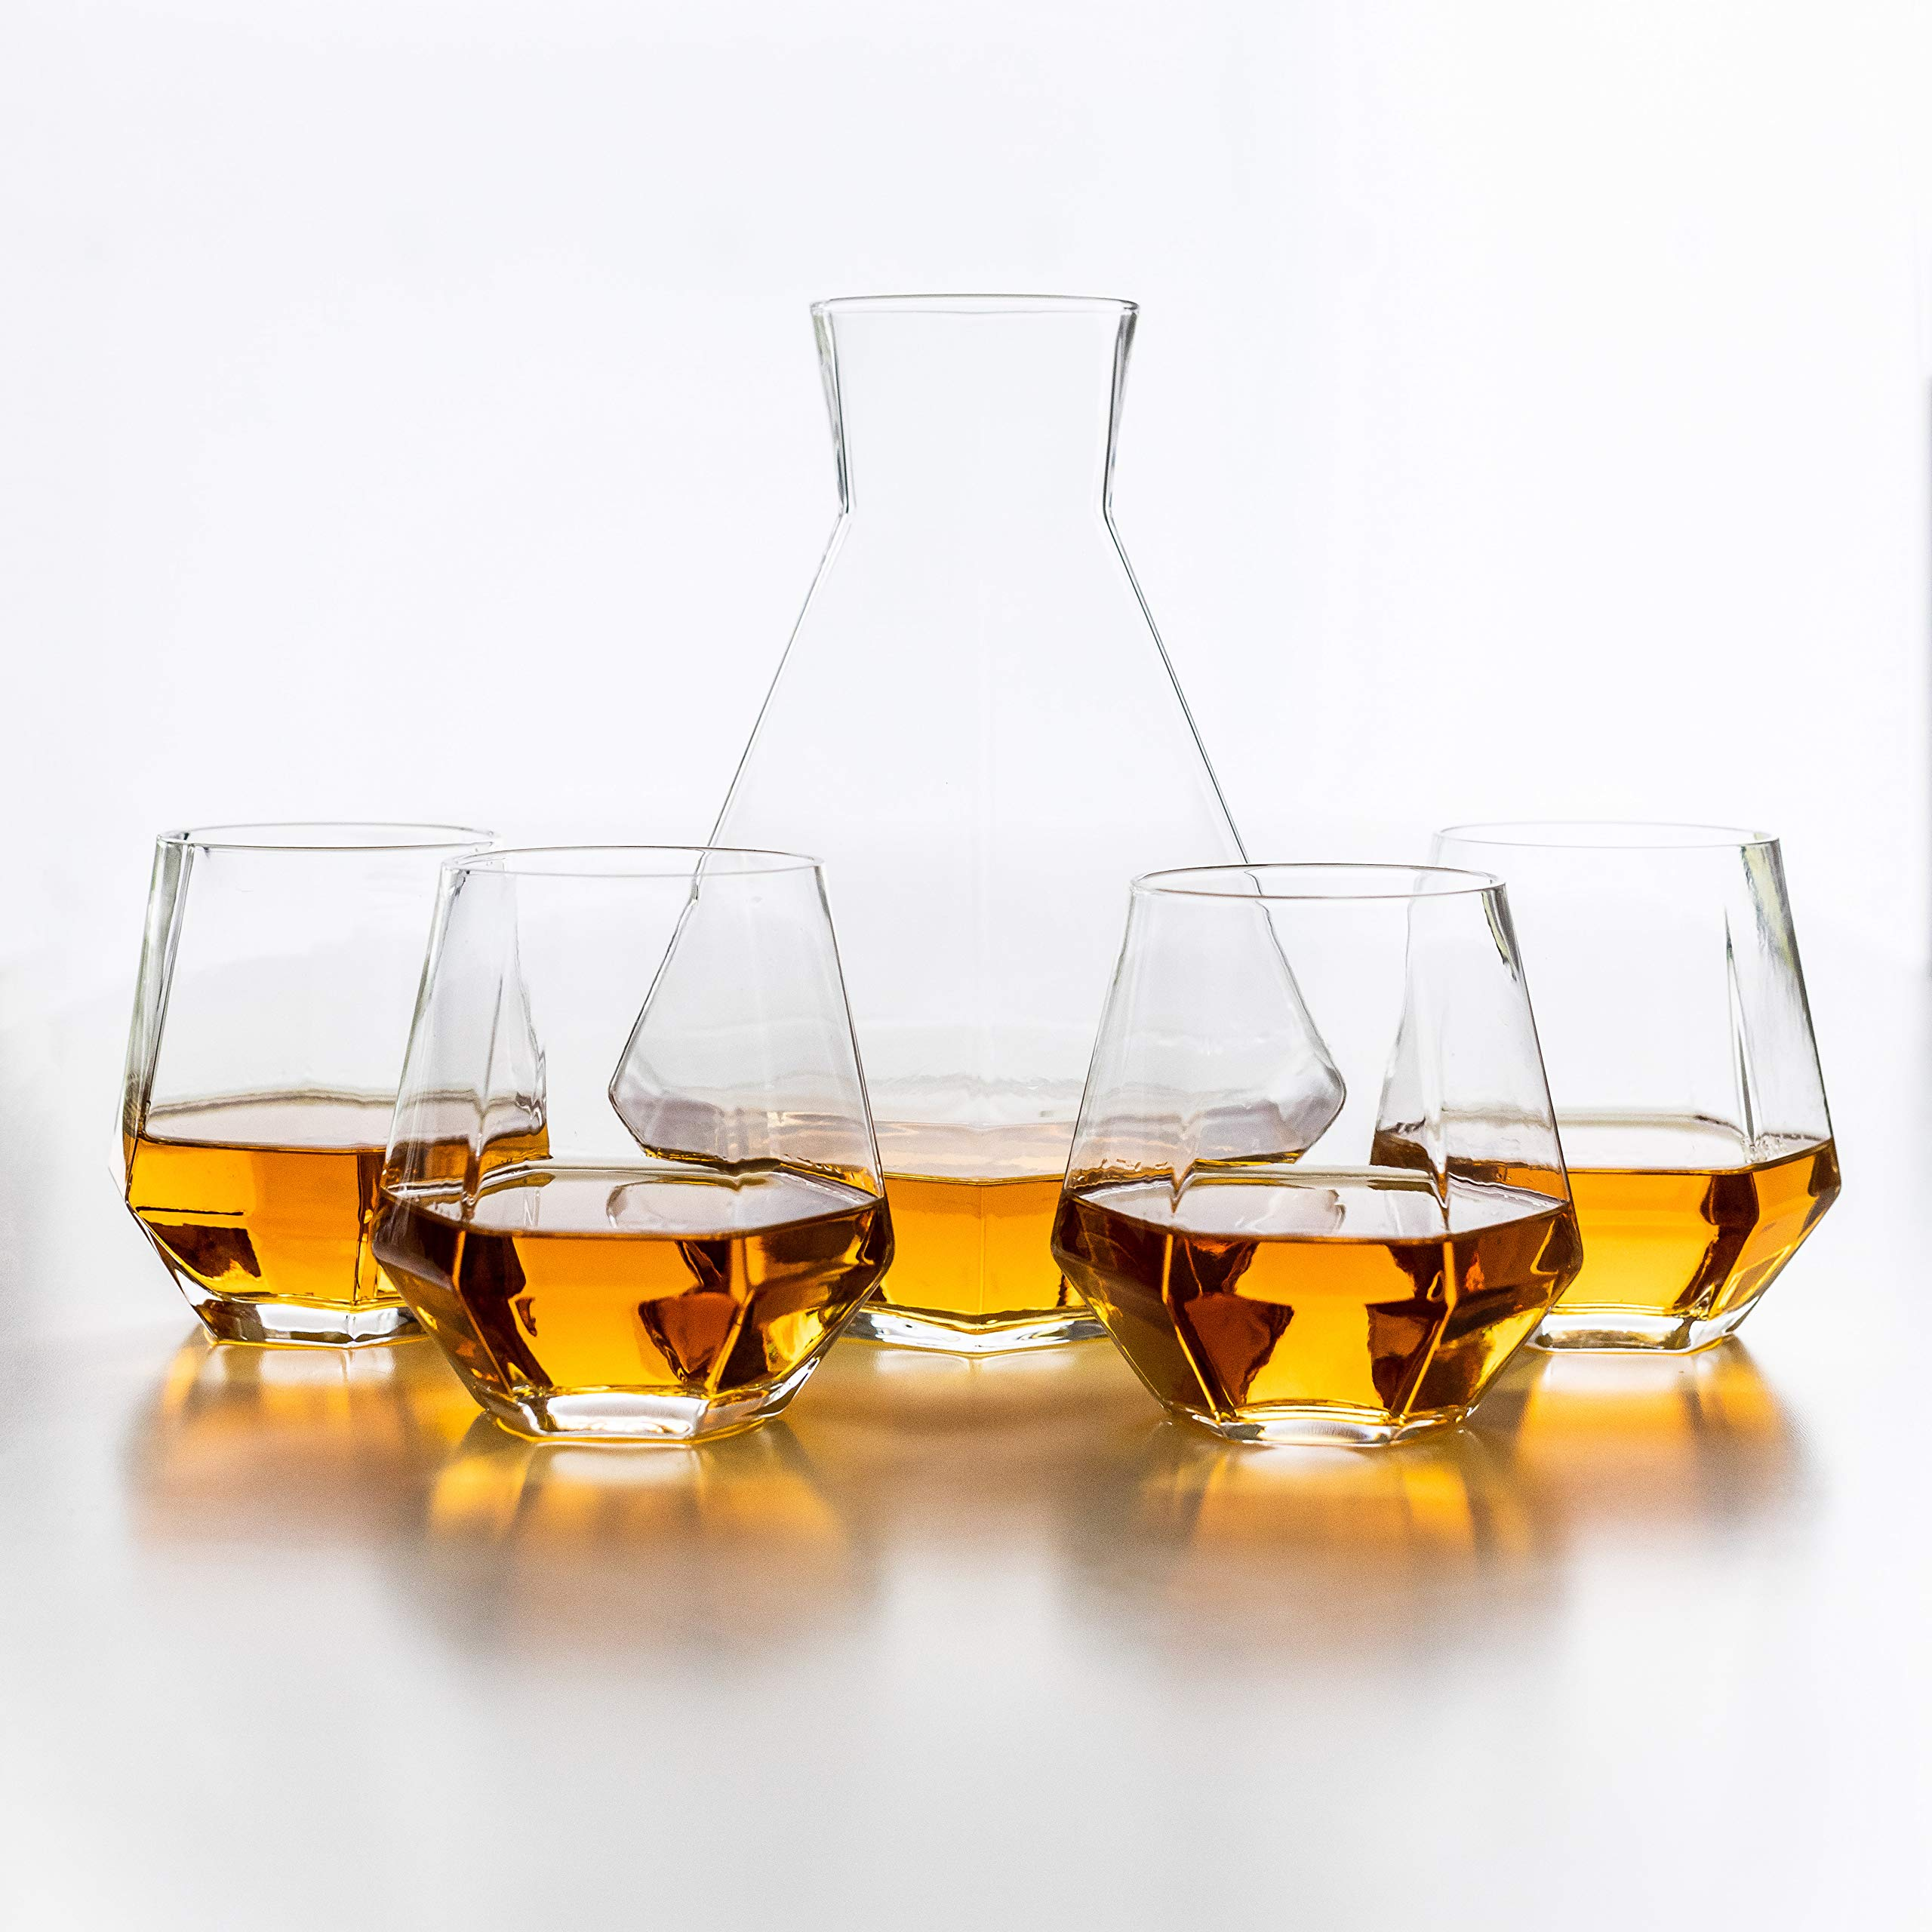 Diamant 5 Piece Carafe Set - Geometric, Multi-Use, Modern Glassware - 4 Lightweight, Luxury Glasses for Water, Cocktails, Whiskey, Bourbon, Stemless Wine Glass - Box Set, by Kop & Hagen